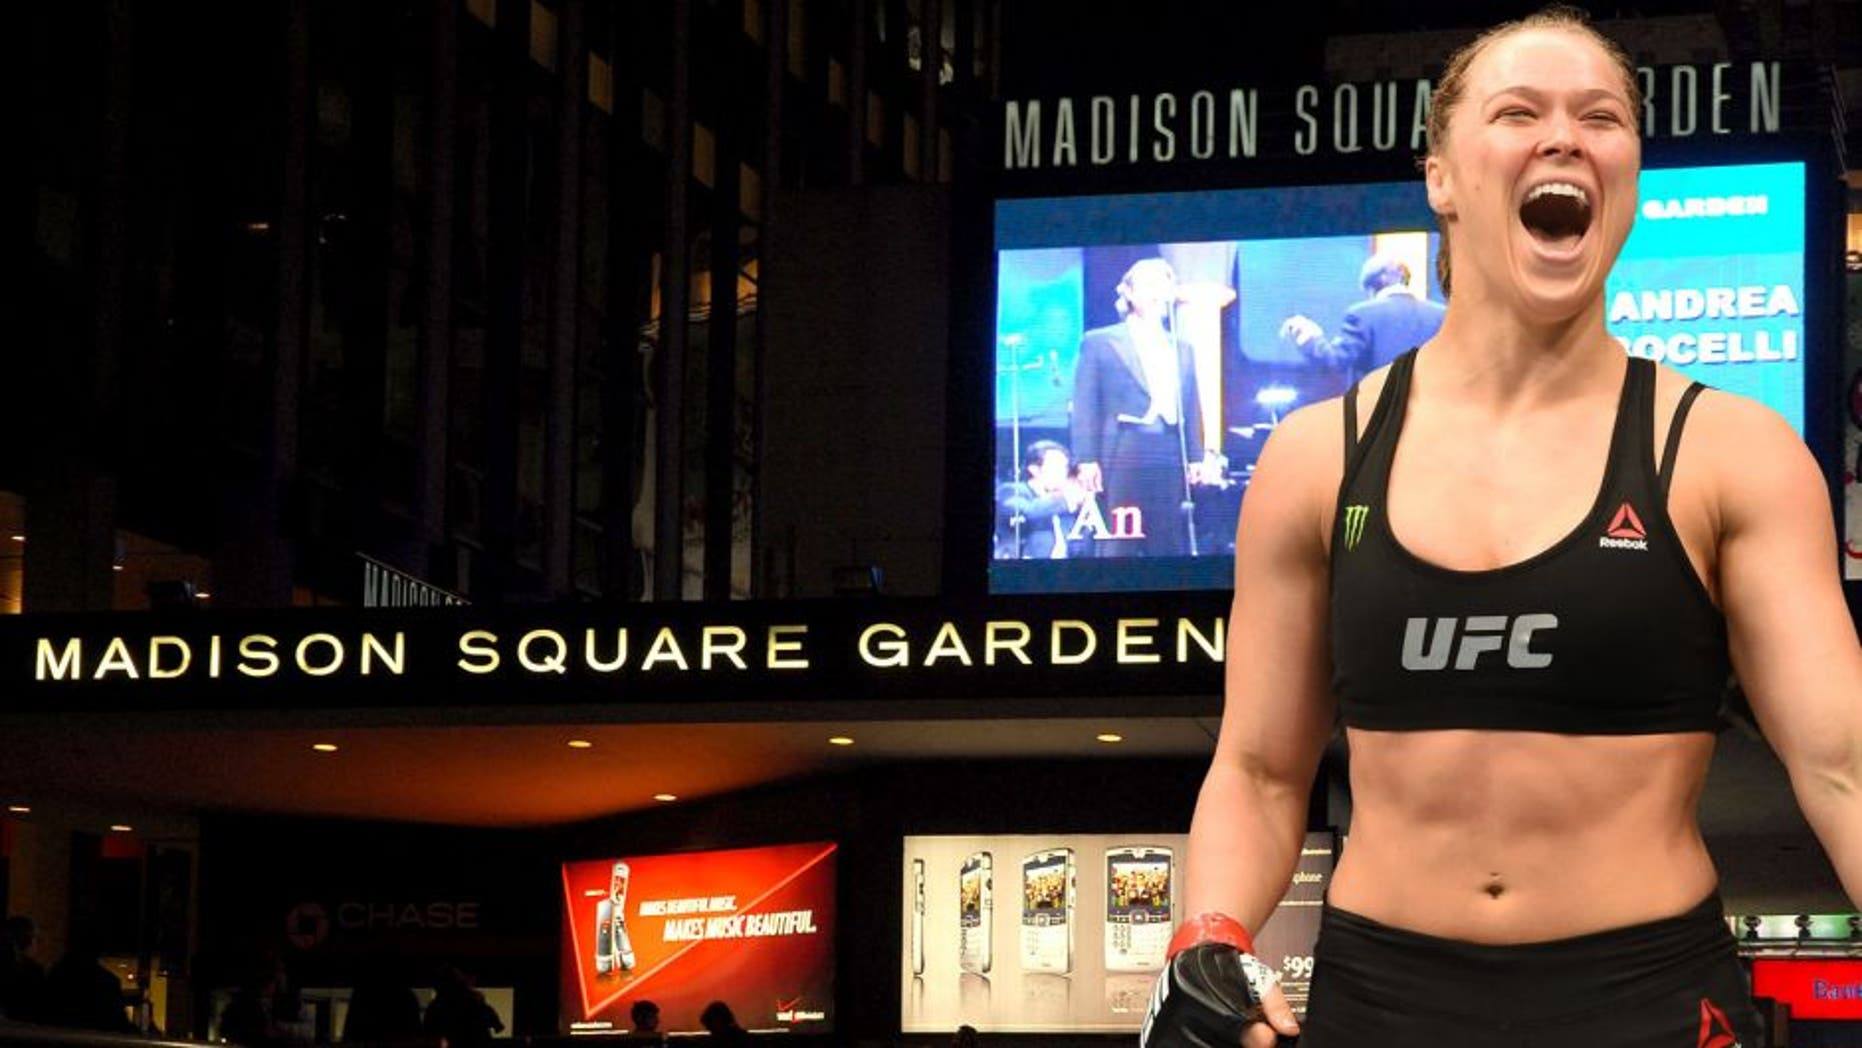 NEW YORK - NOVEMBER 30: The exterior of Madison Square Garden is seen prior to Andrea Bocelli's concert on November 30, 2006 in New York City. (Photo by Rob Loud/Getty Images), LOS ANGELES, CA - FEBRUARY 28: Ronda Rousey celebrates her victory over Cat Zingano in their UFC women's bantamweight championship bout during the UFC 184 event at Staples Center on February 28, 2015 in Los Angeles, California. (Photo by Harry How/Getty Images)